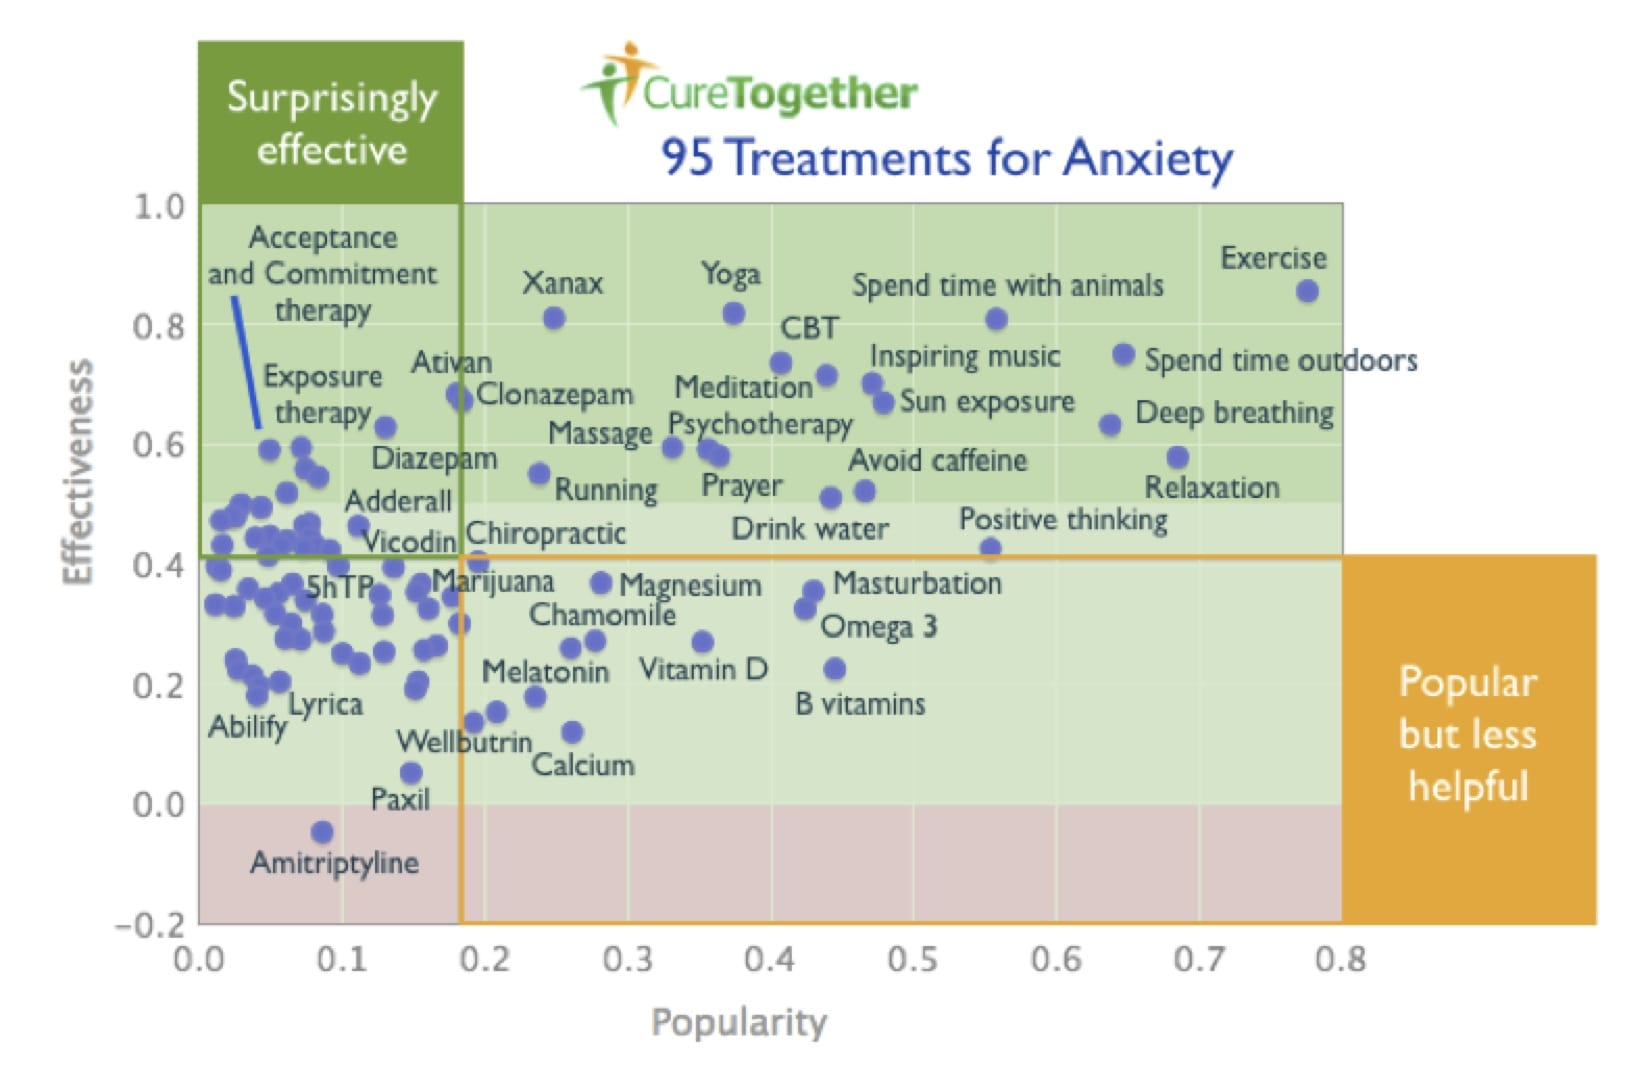 Treatment for anxiety - For